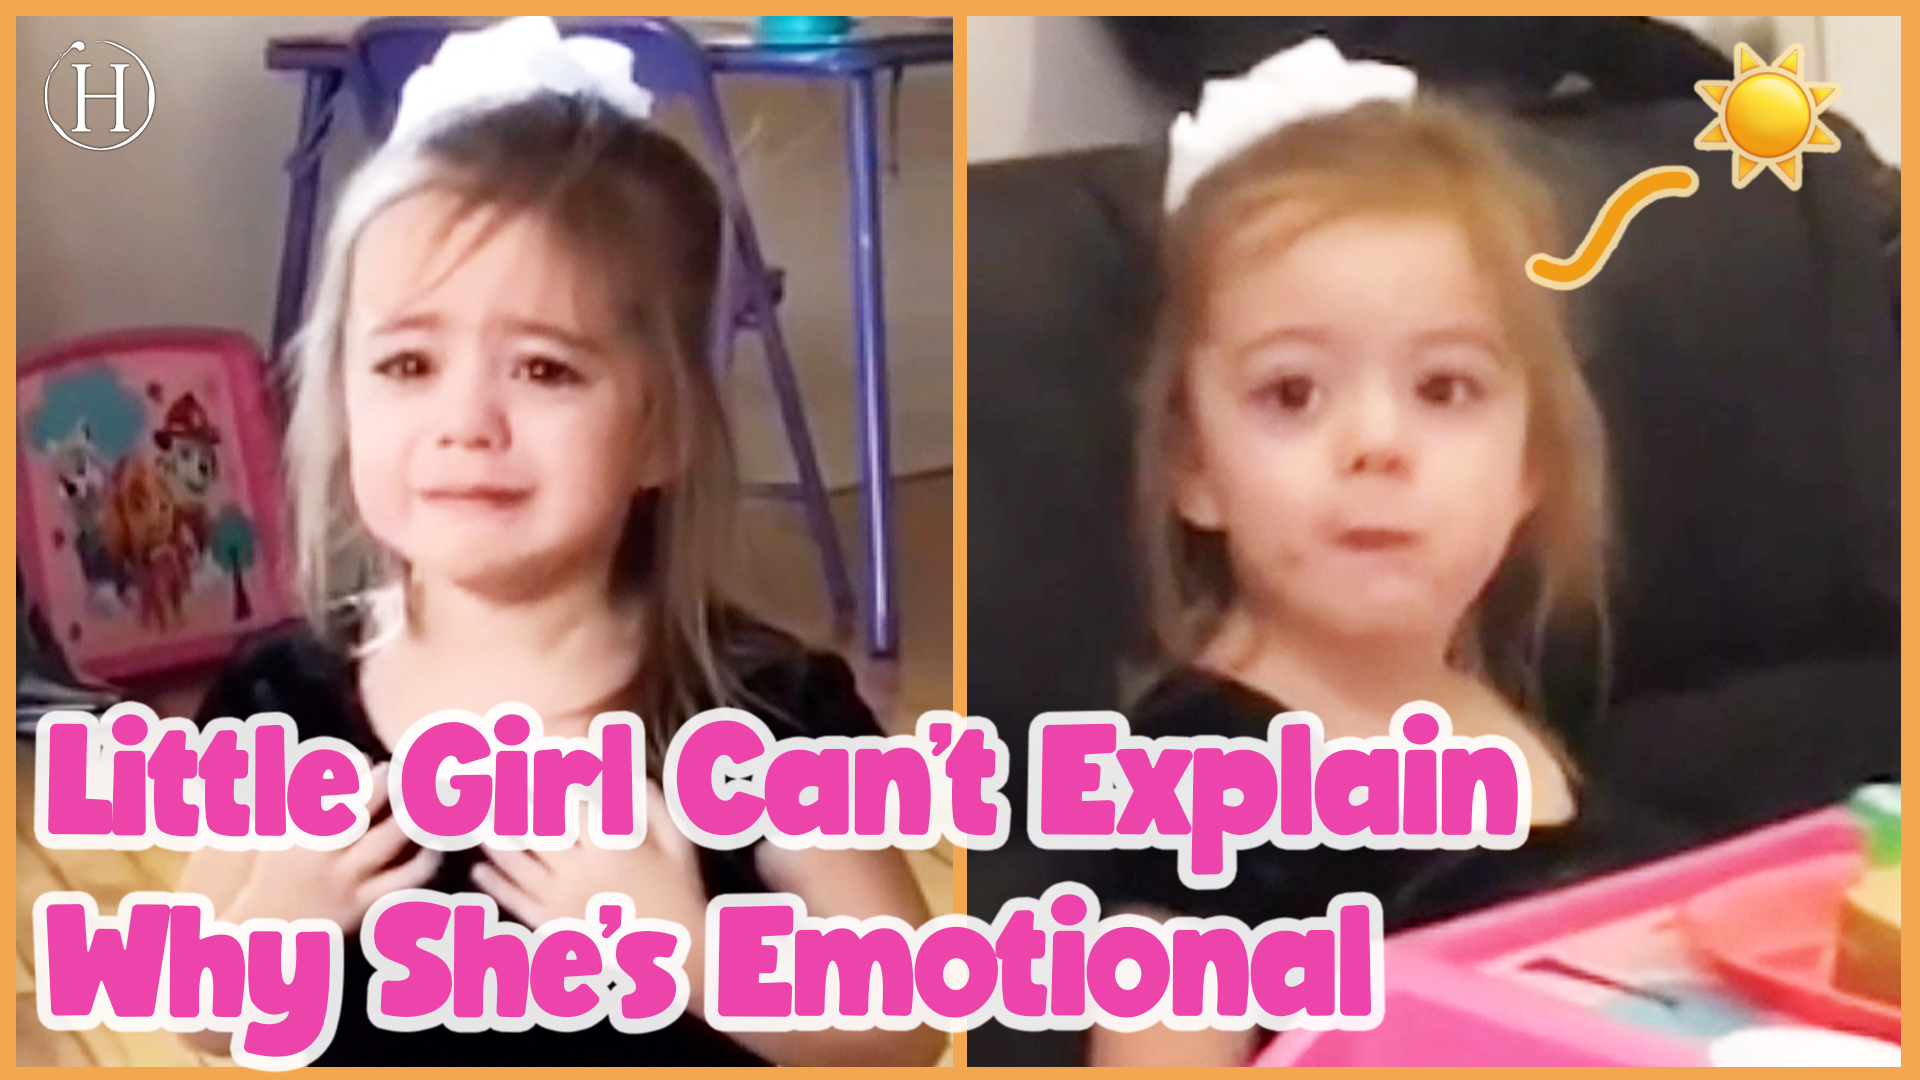 Three Year Old Can't Explain Why She's Sad | Humanity Life